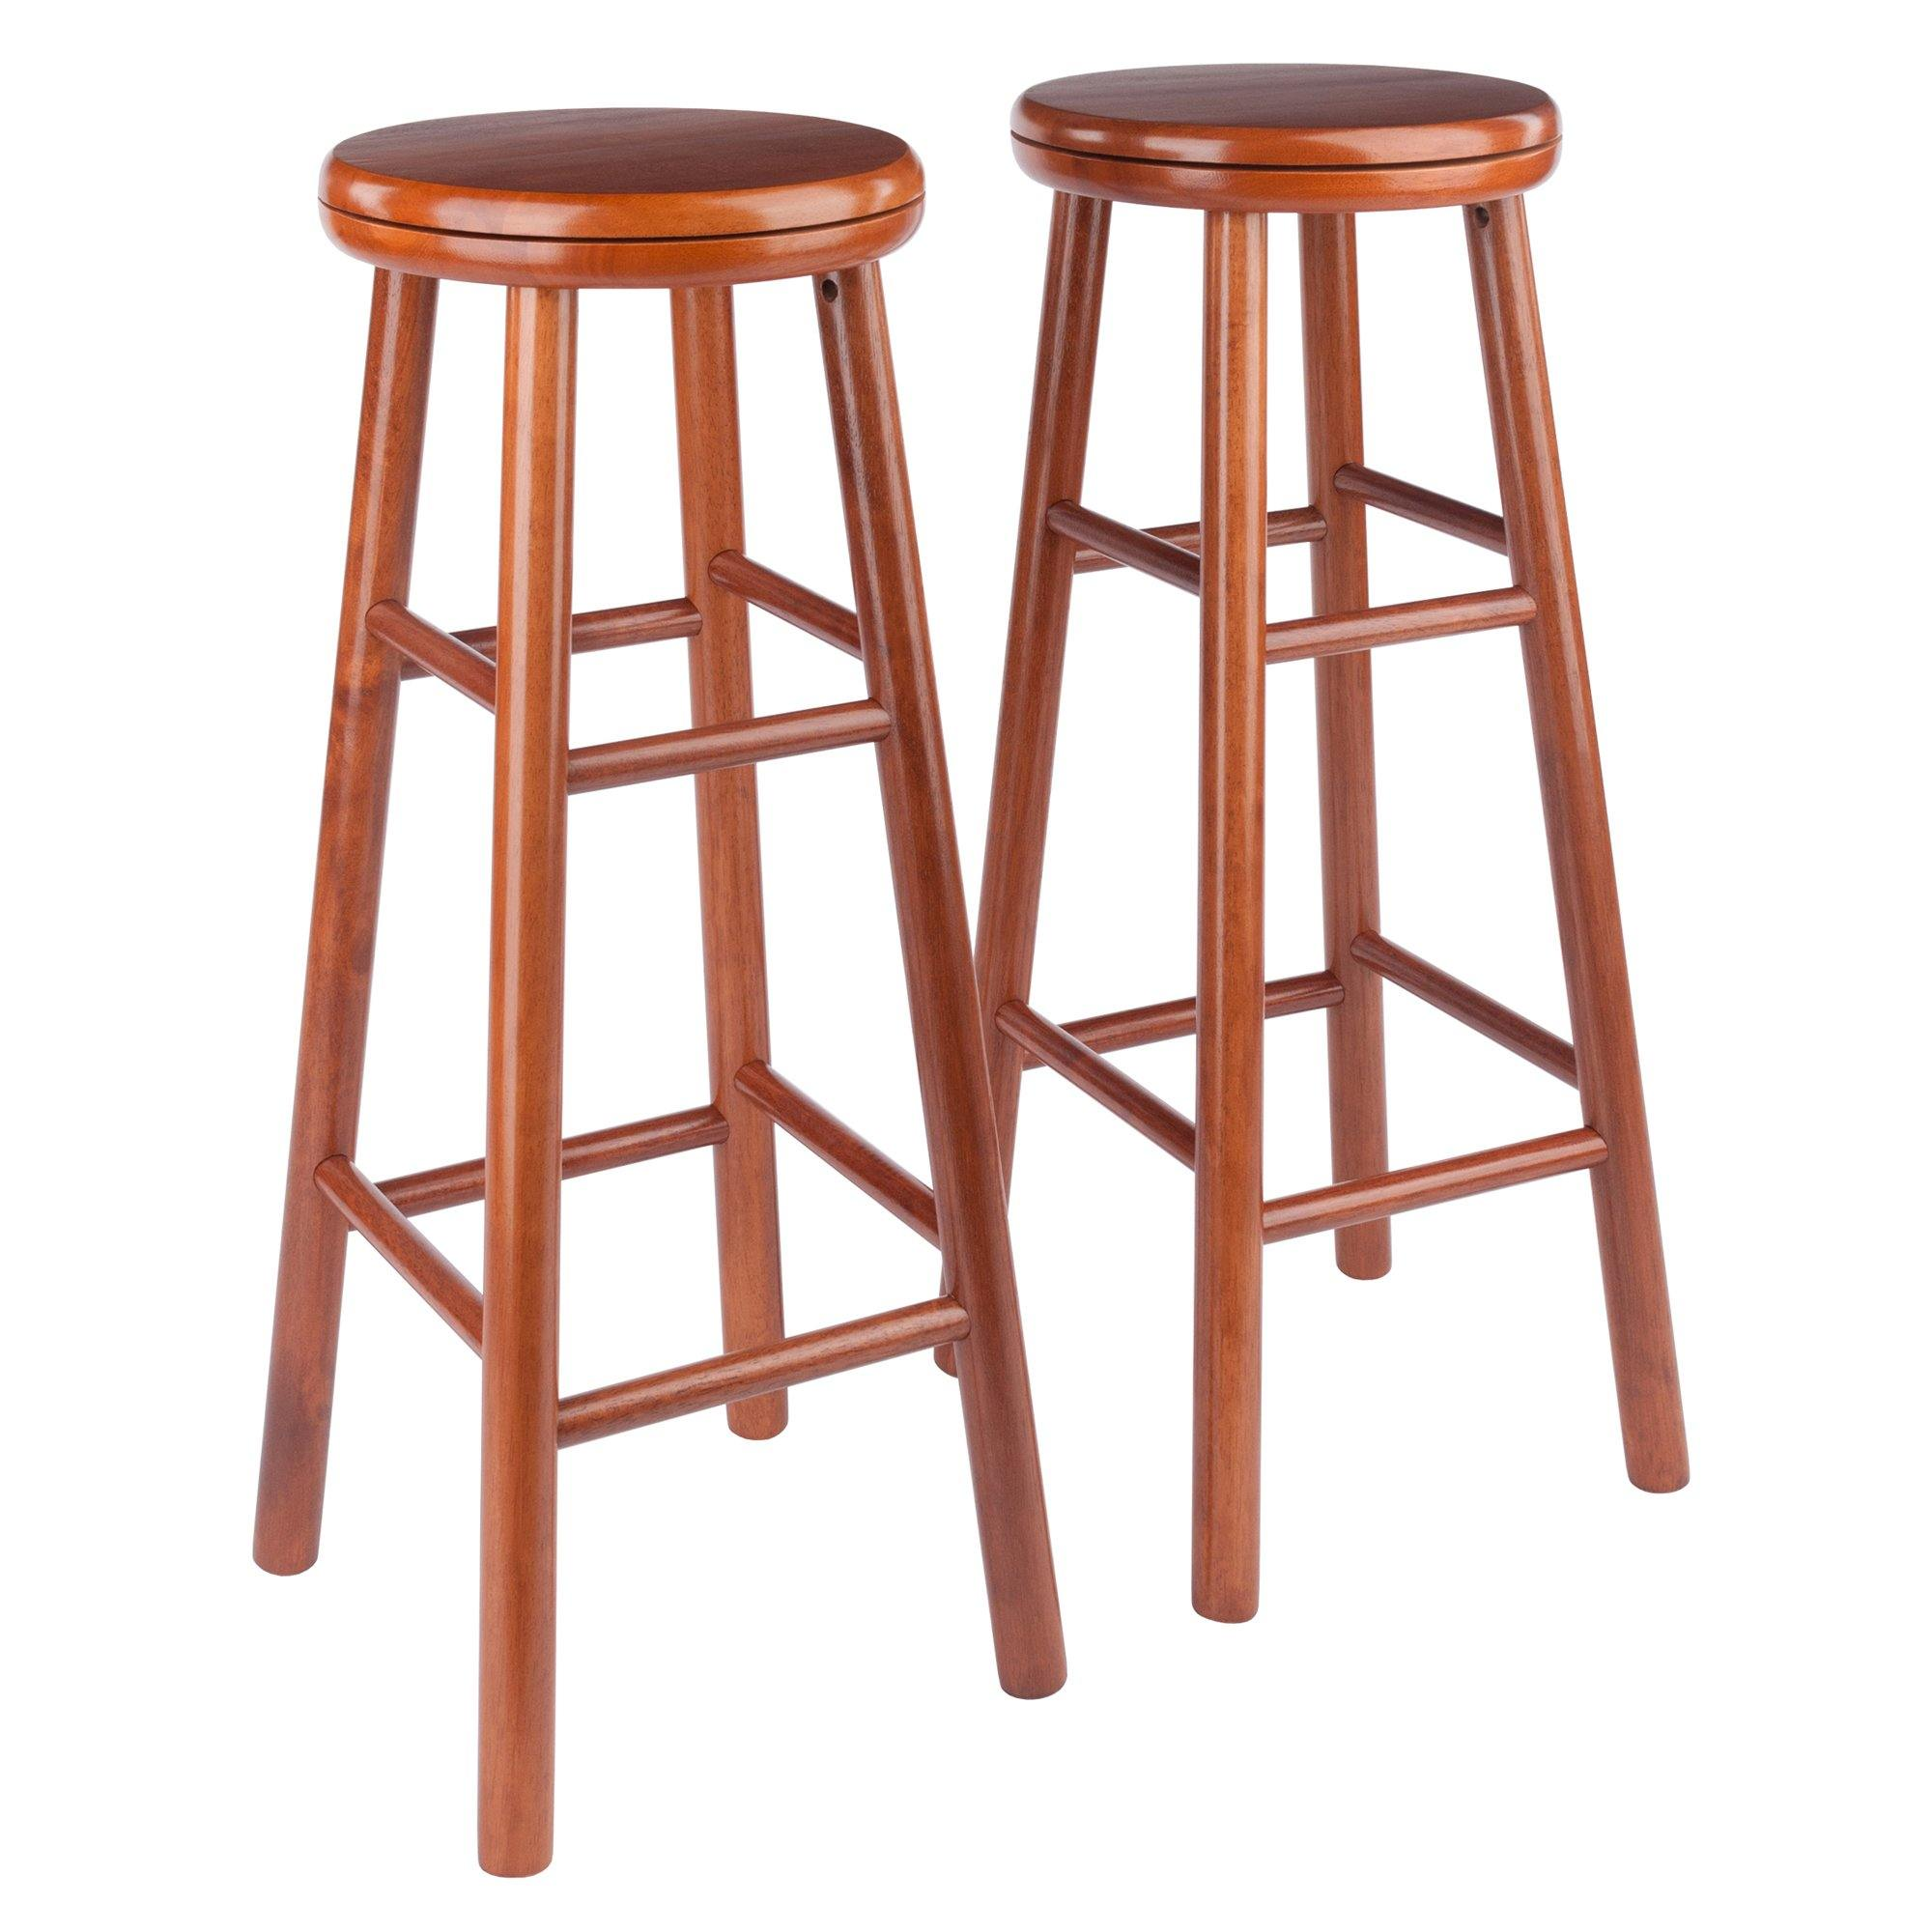 Oakley Swivel Seat Bar Stools, 2-Pc Set, Cherry - My USA Furniture